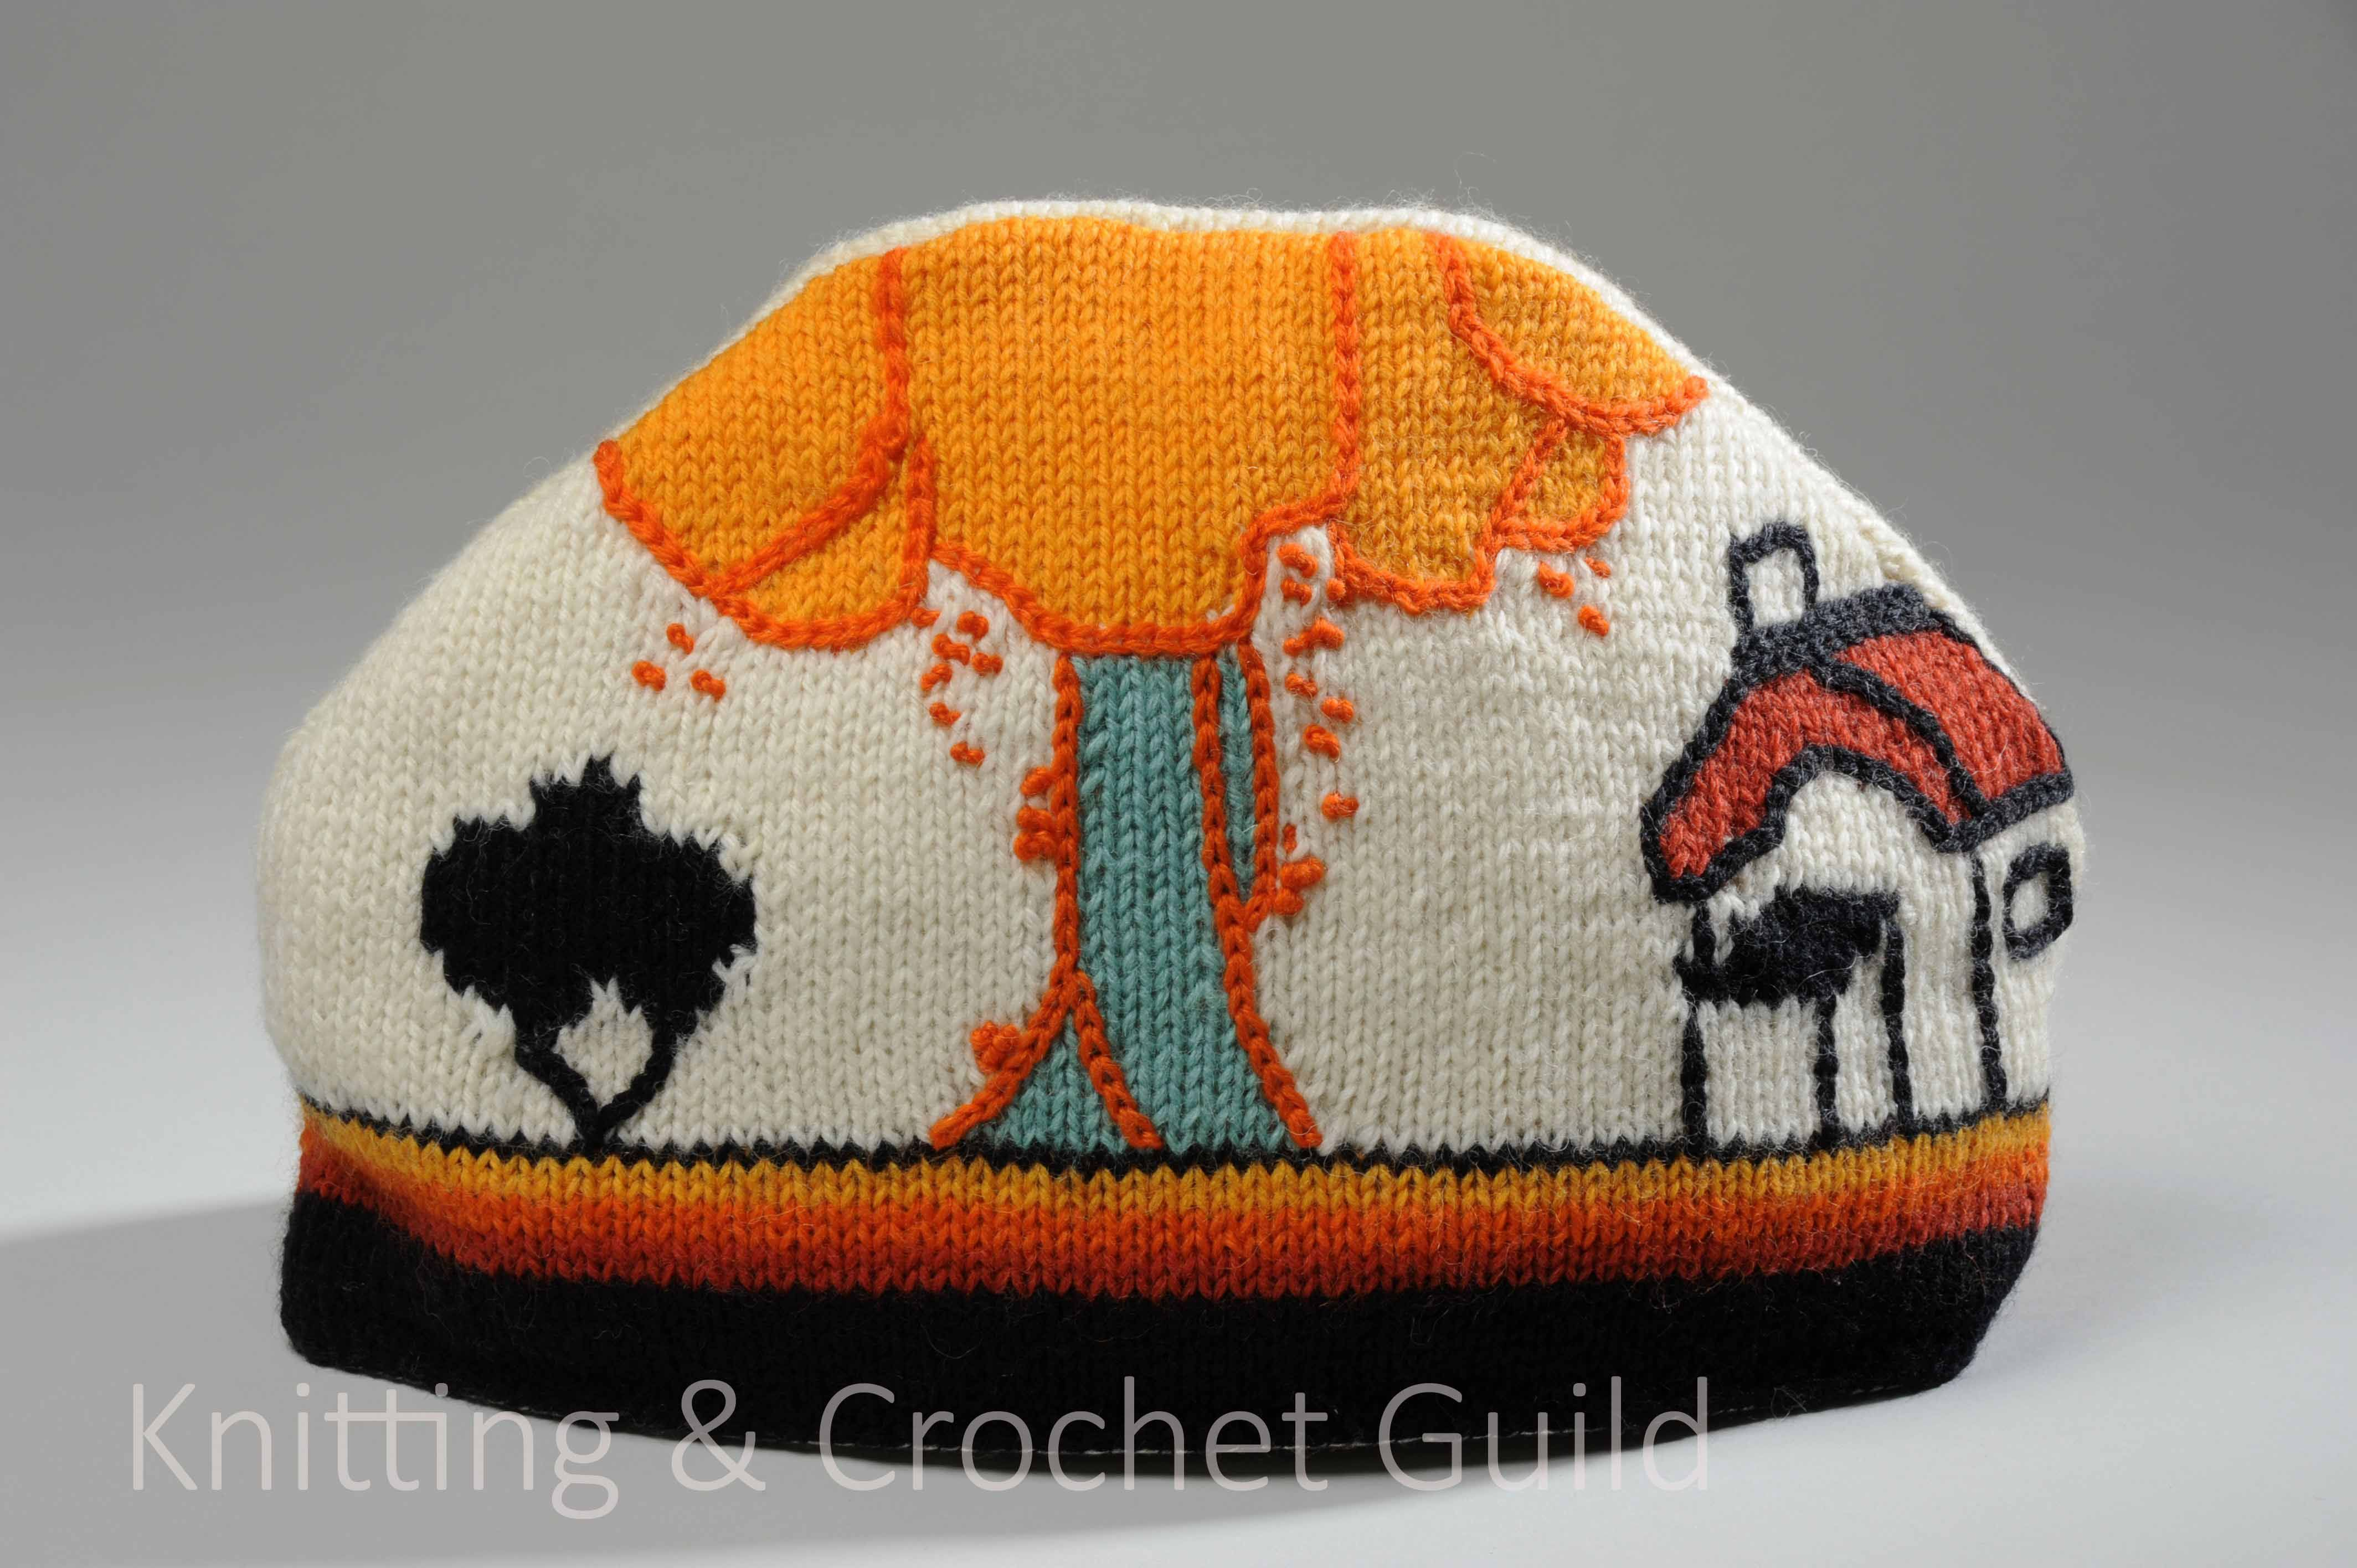 Knitted tea cosy in the style of Clarice Cliff pottery. It would match your tea set.